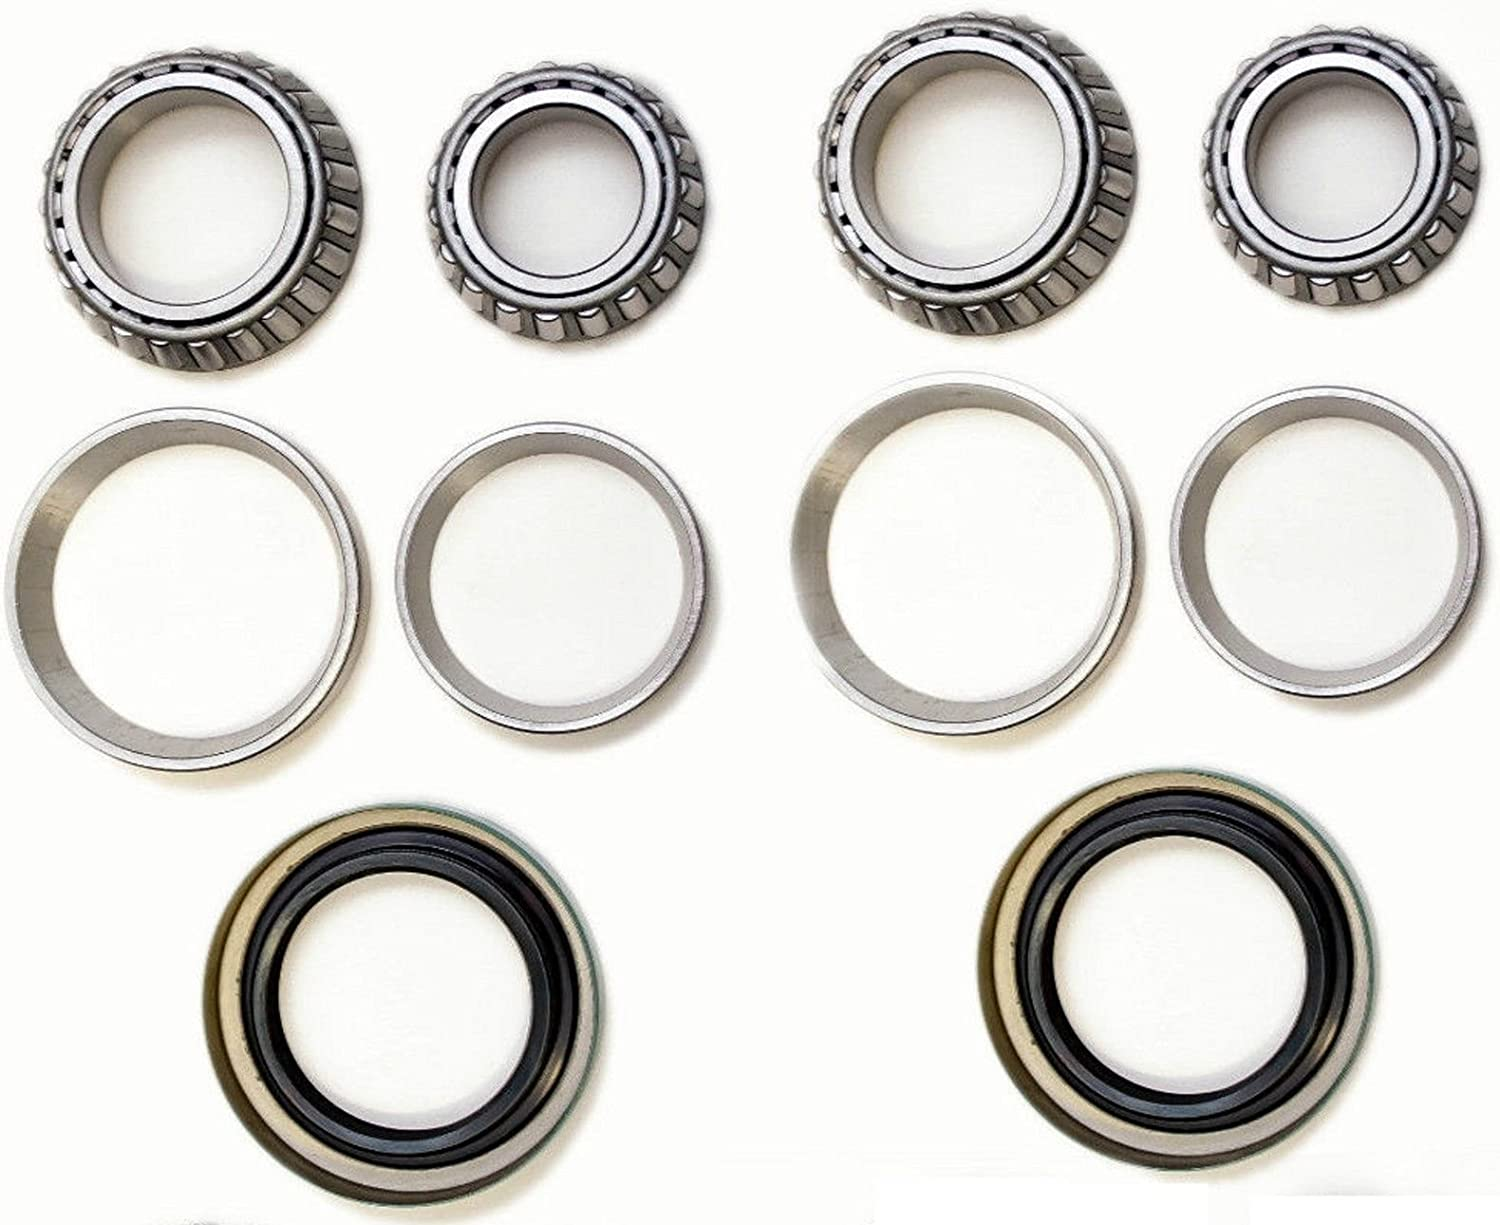 8USAUTO Front Left /& Right Wheel Bearing with Seal Kit Fit Chevrolet Corvair 1960 1961 1962 1963 1964